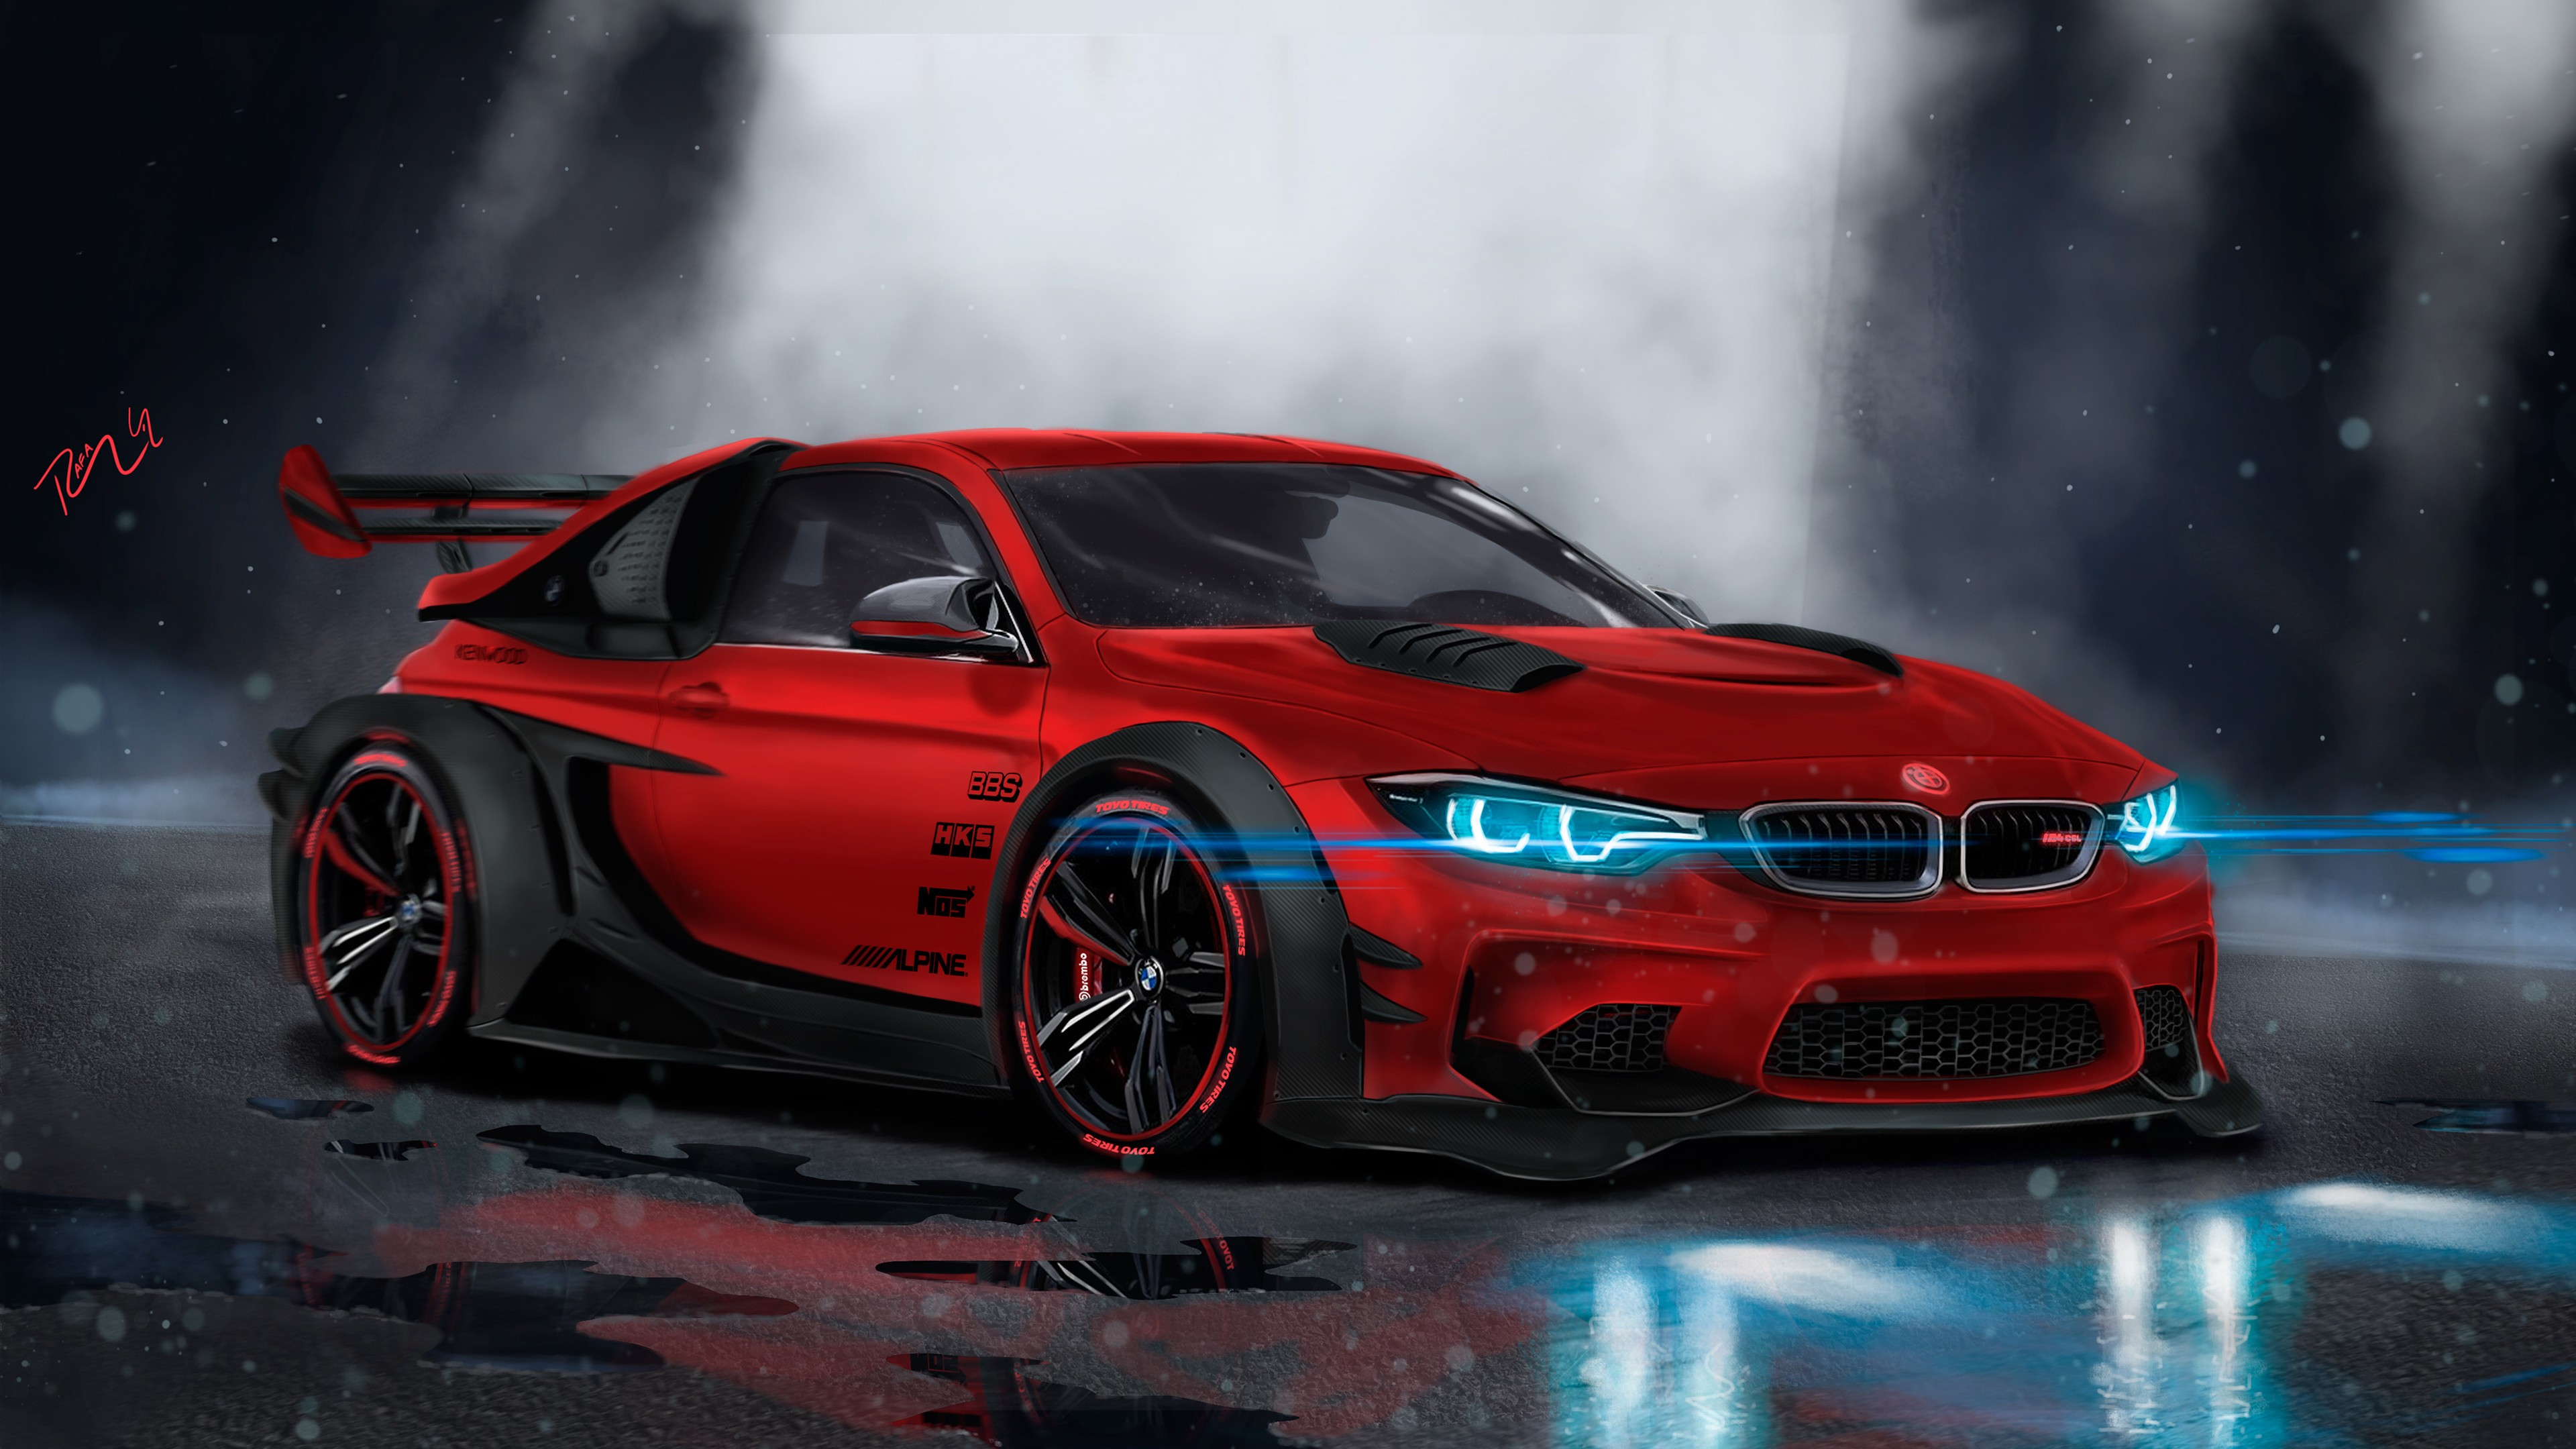 BMW M4 Custom CGI 4K Wallpaper